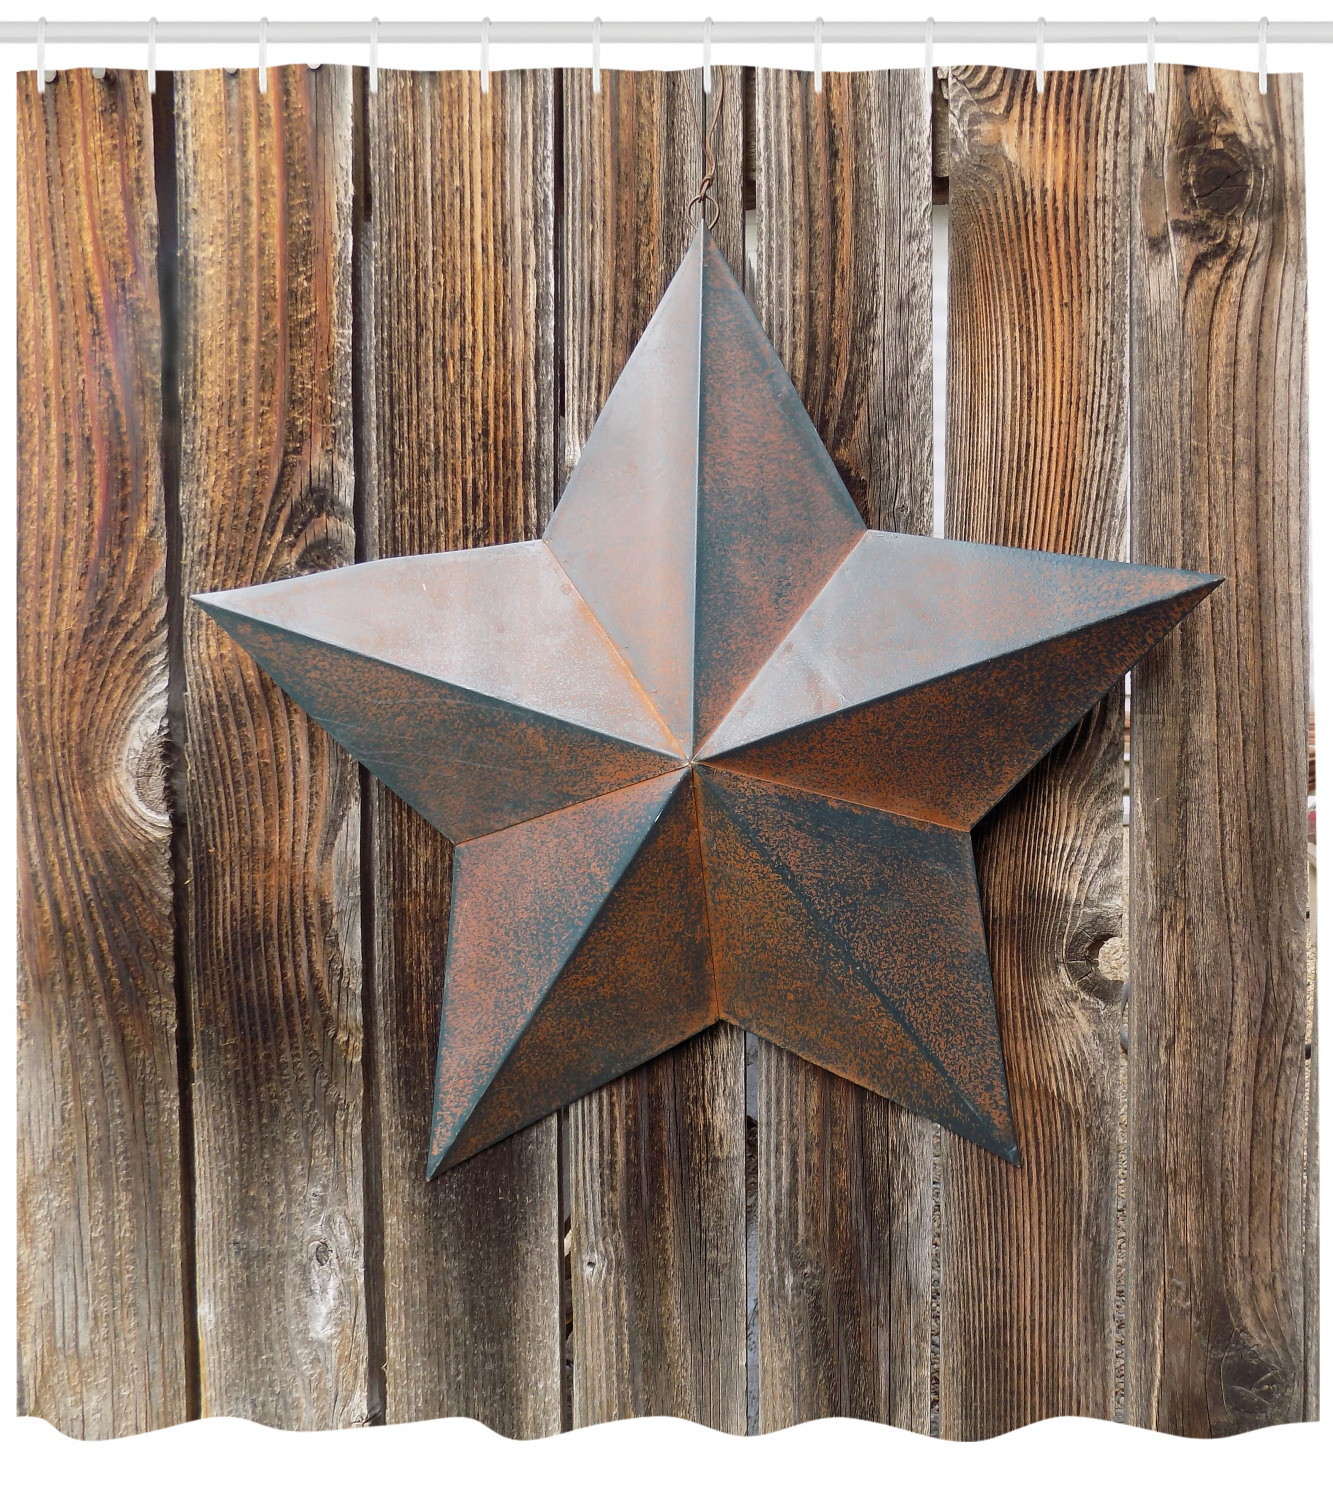 Western Texas Star Rustic Retro Wooden Boards Shower Curtain Hooks Bathroom Mat